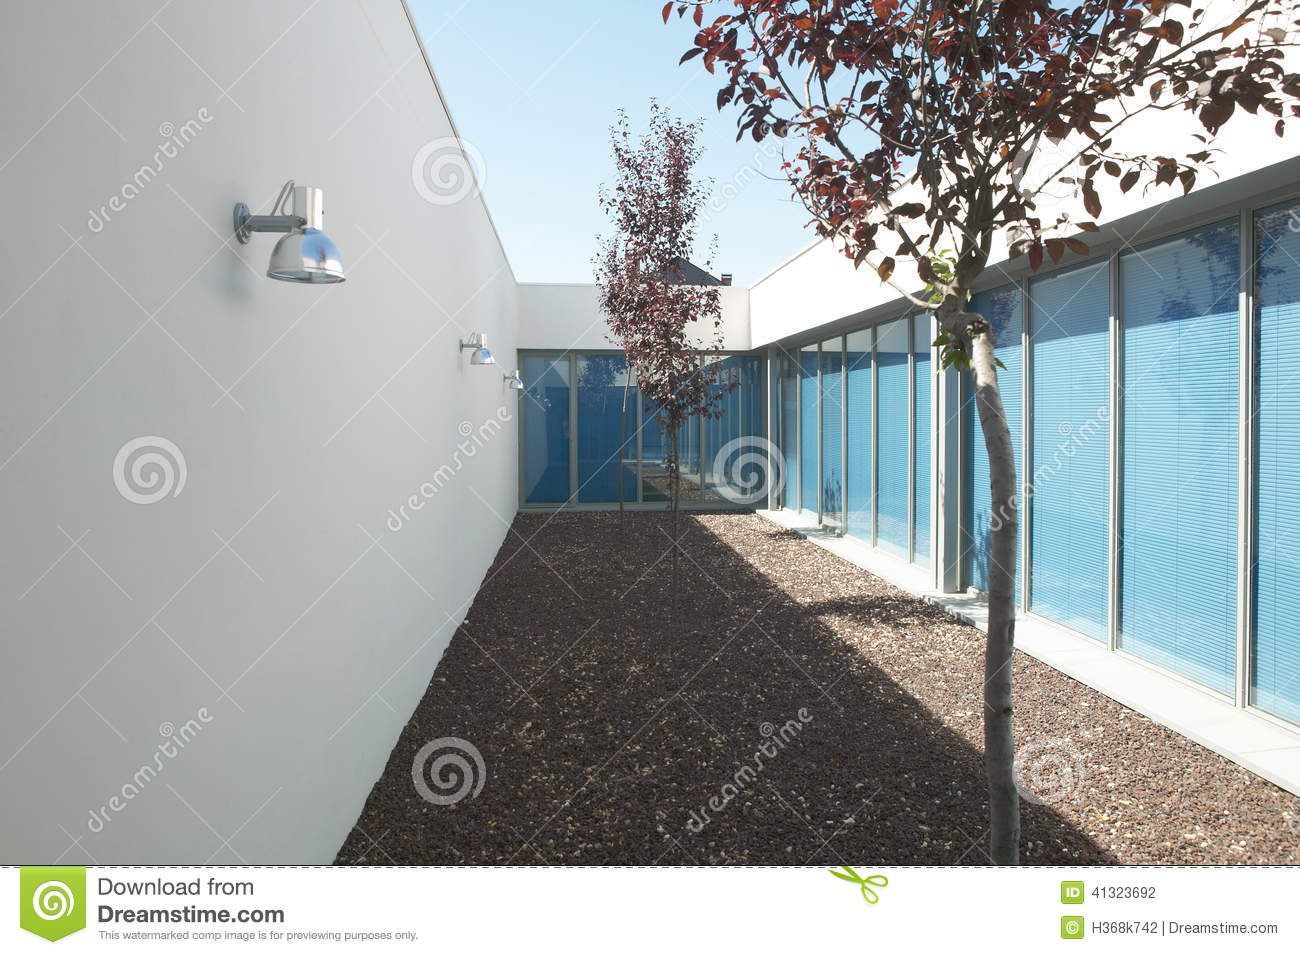 Modern residential house with patio and trees stock photo for Modern residential house